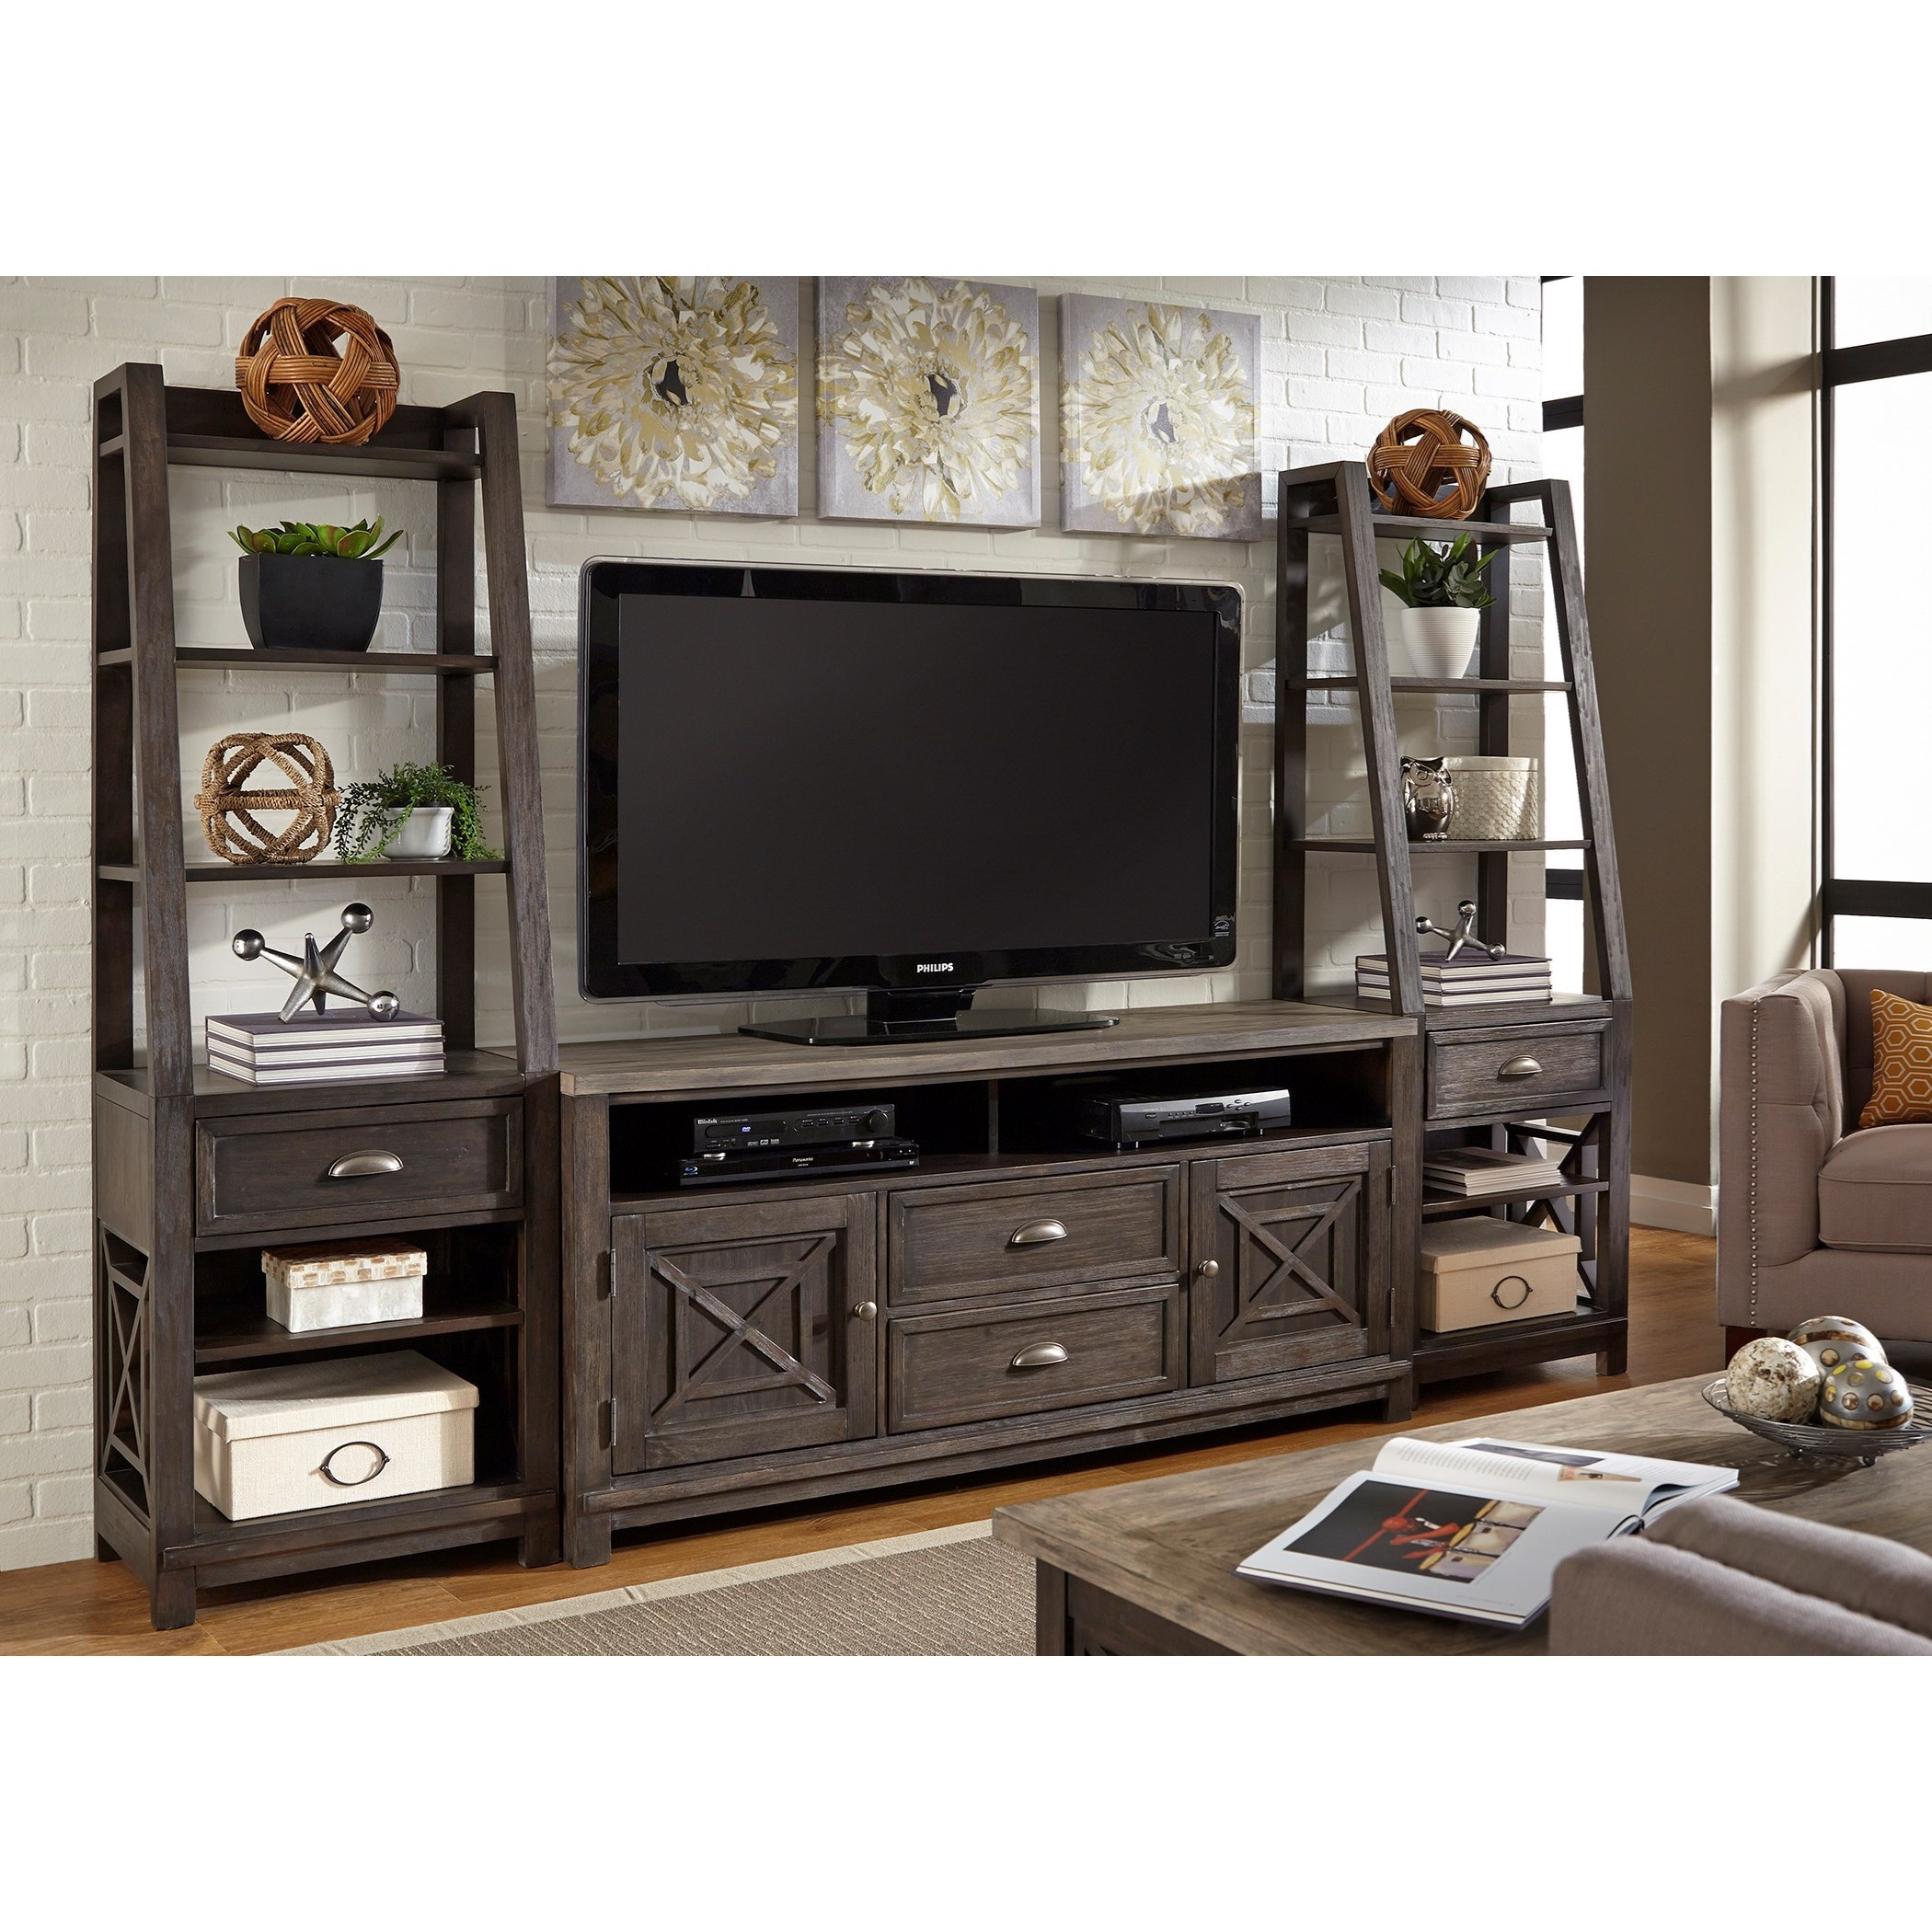 Shop All Entertainment Center Furniture